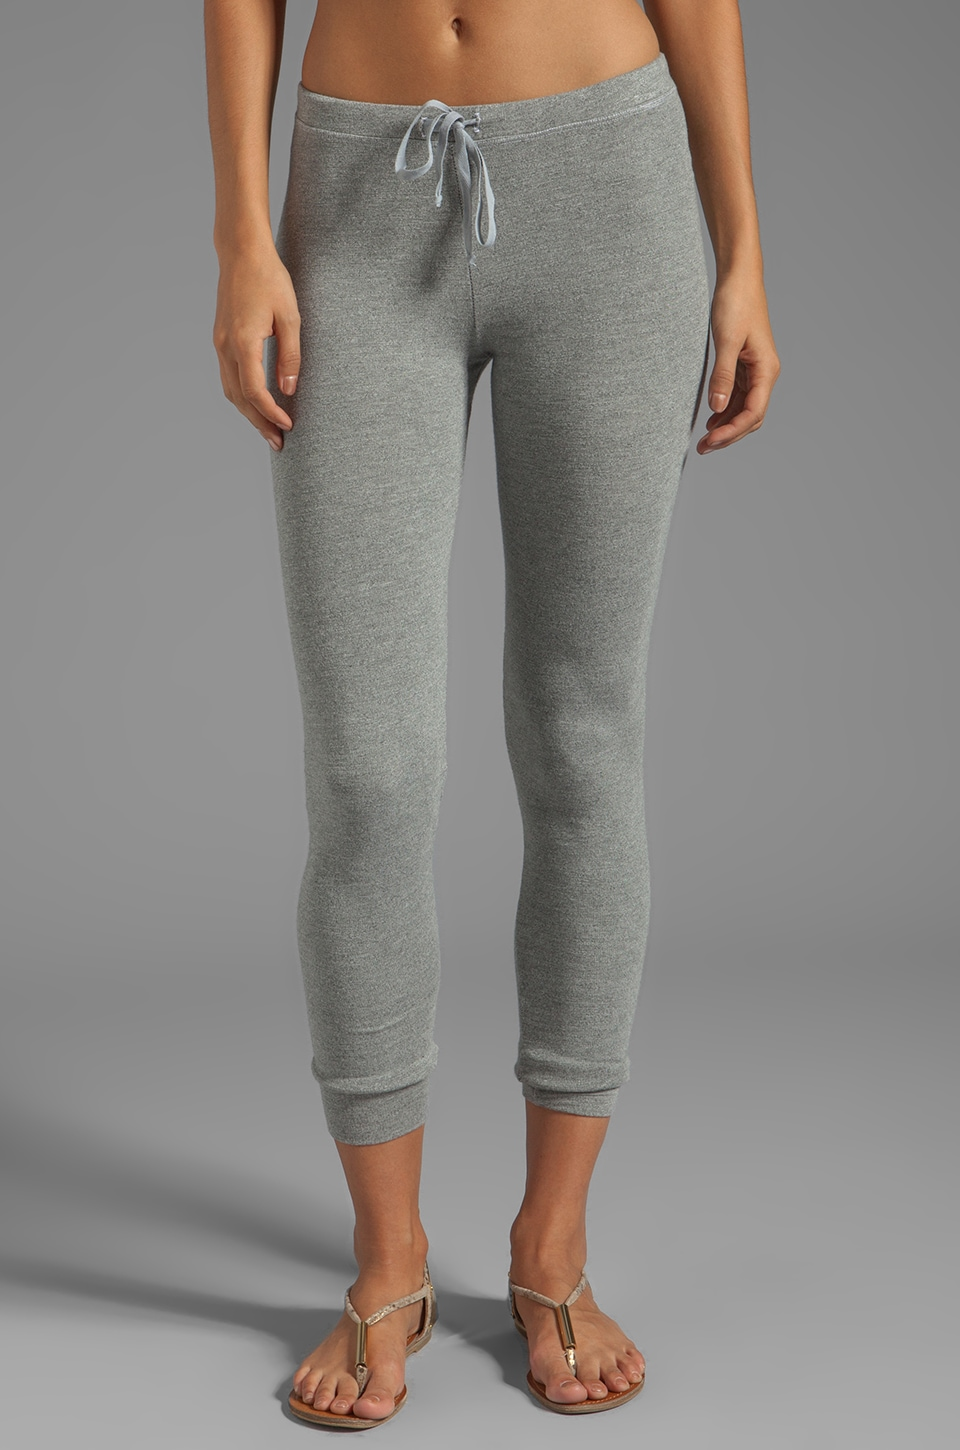 SUNDRY Skinny Sweatpants in Heather Grey